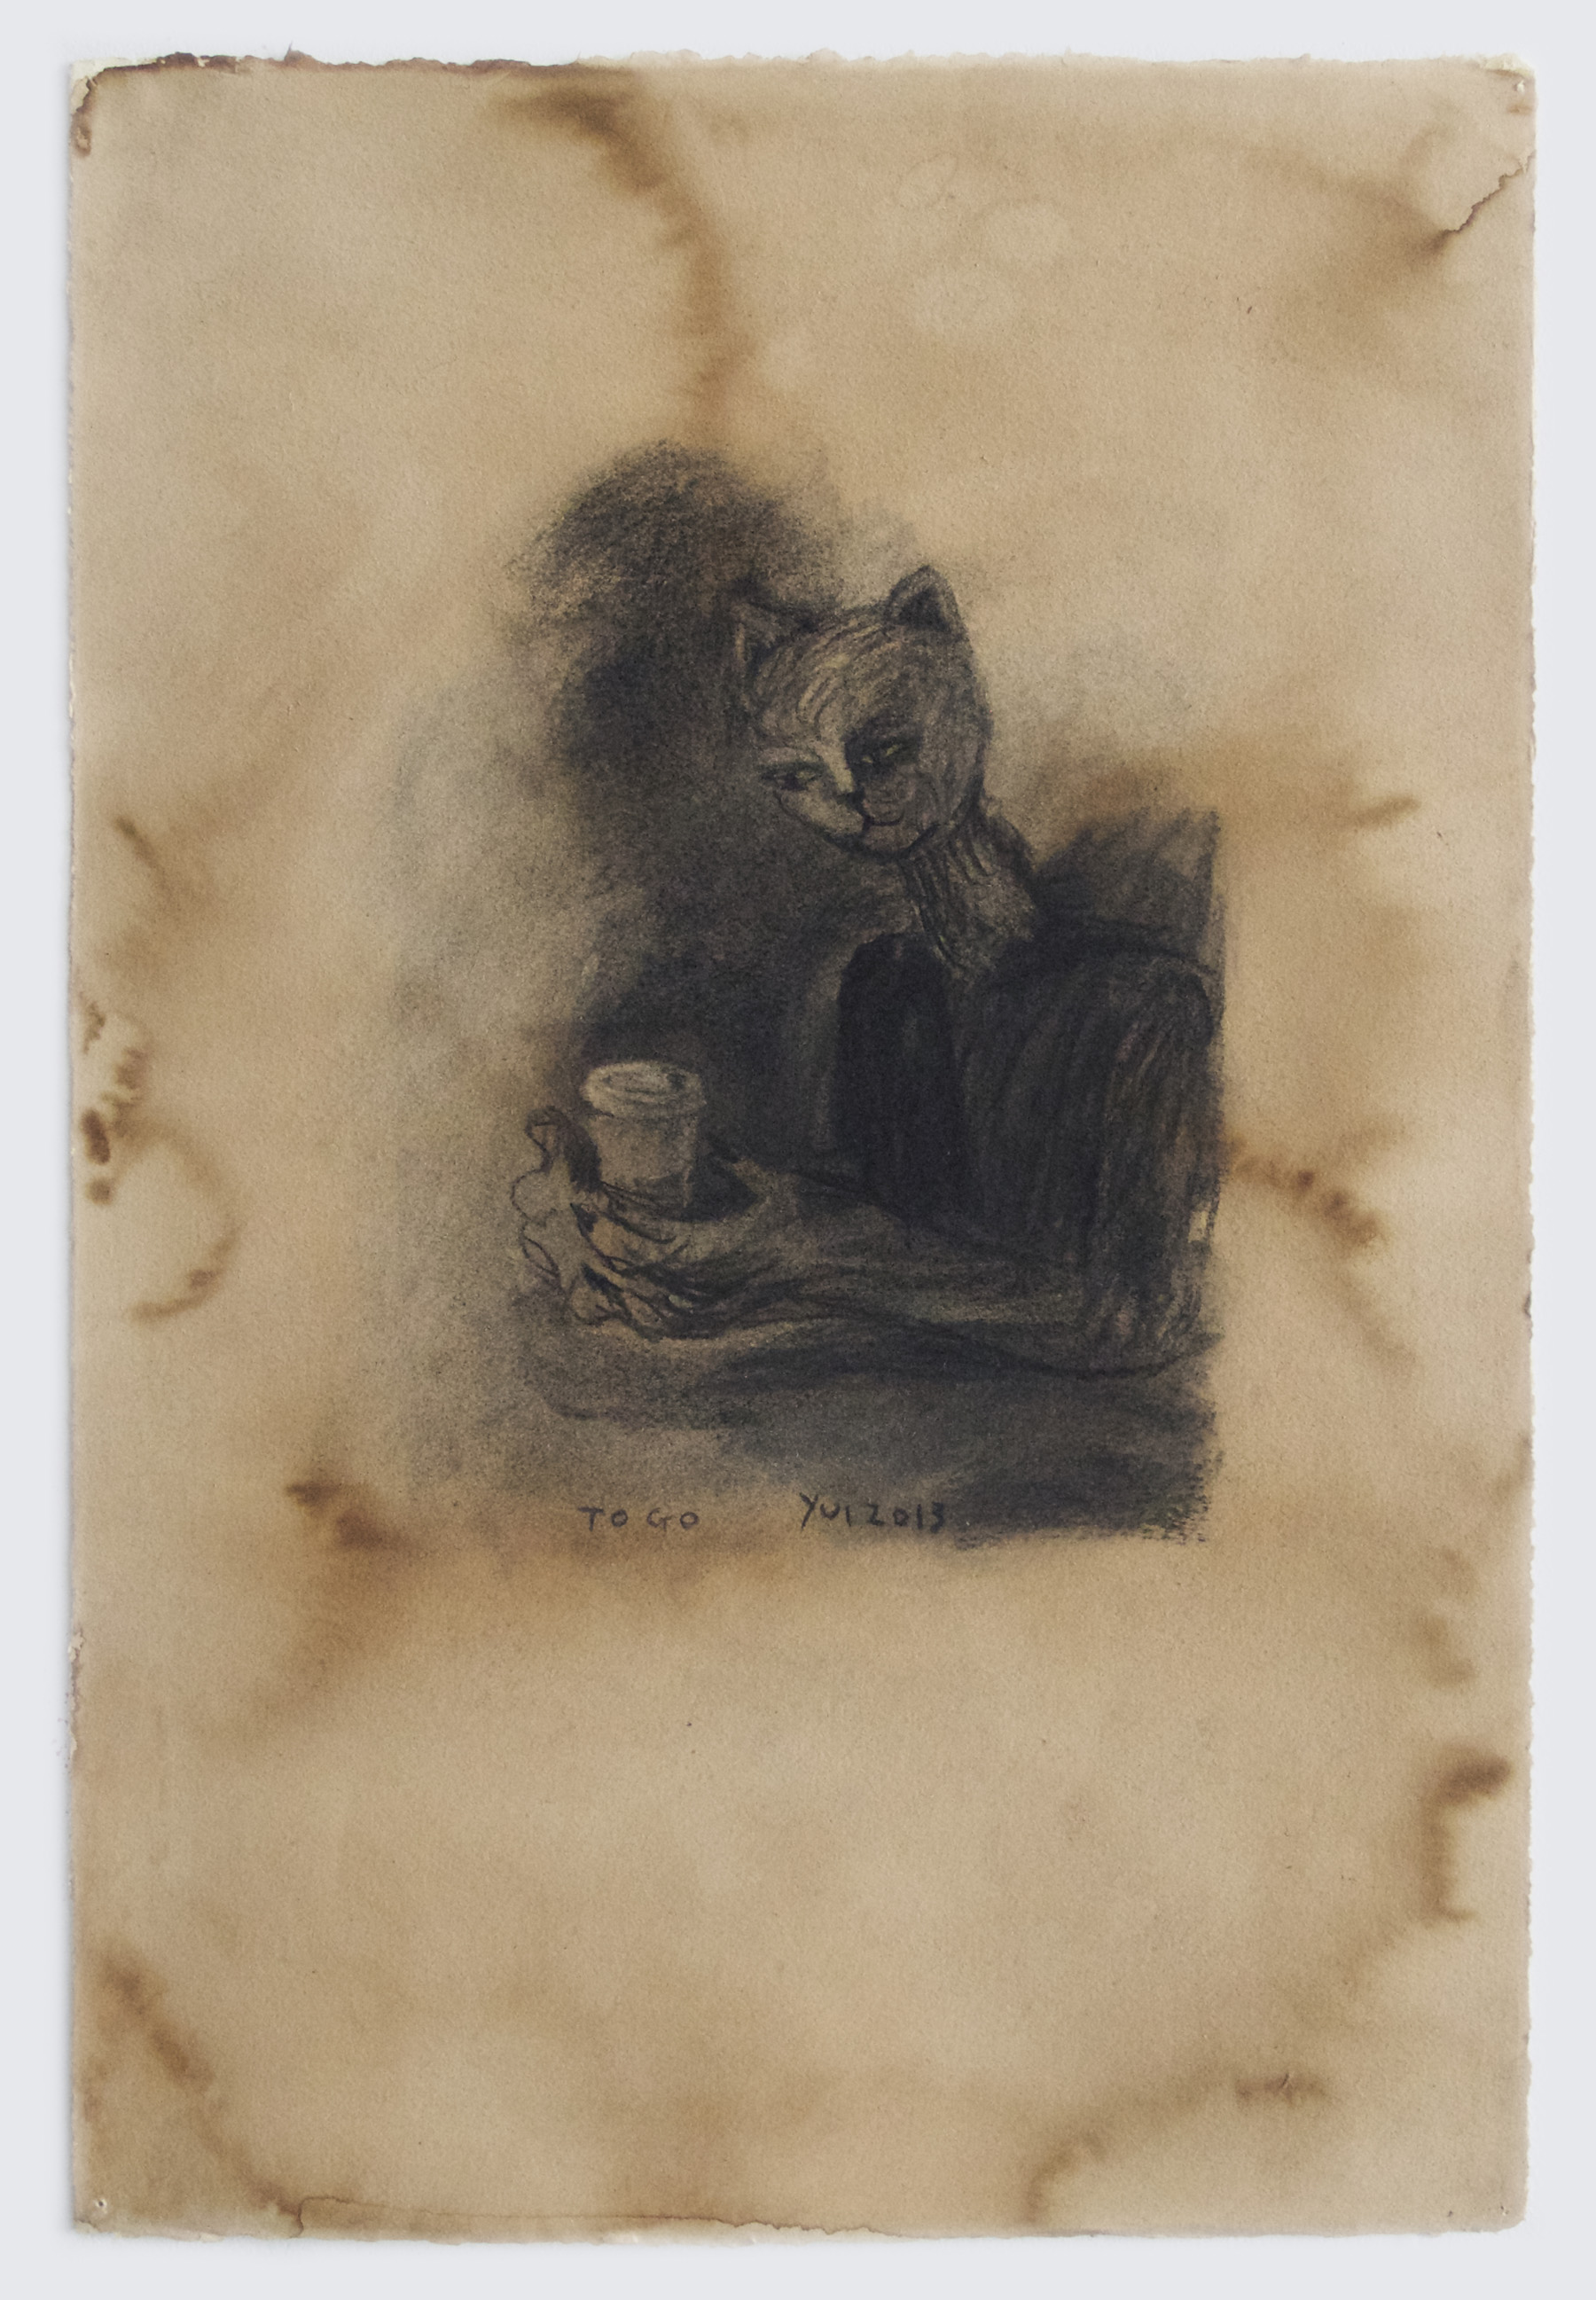 Yui Kugimiya  To Go, 2013  Charcoal and coffee on paper  22 x 15 inches